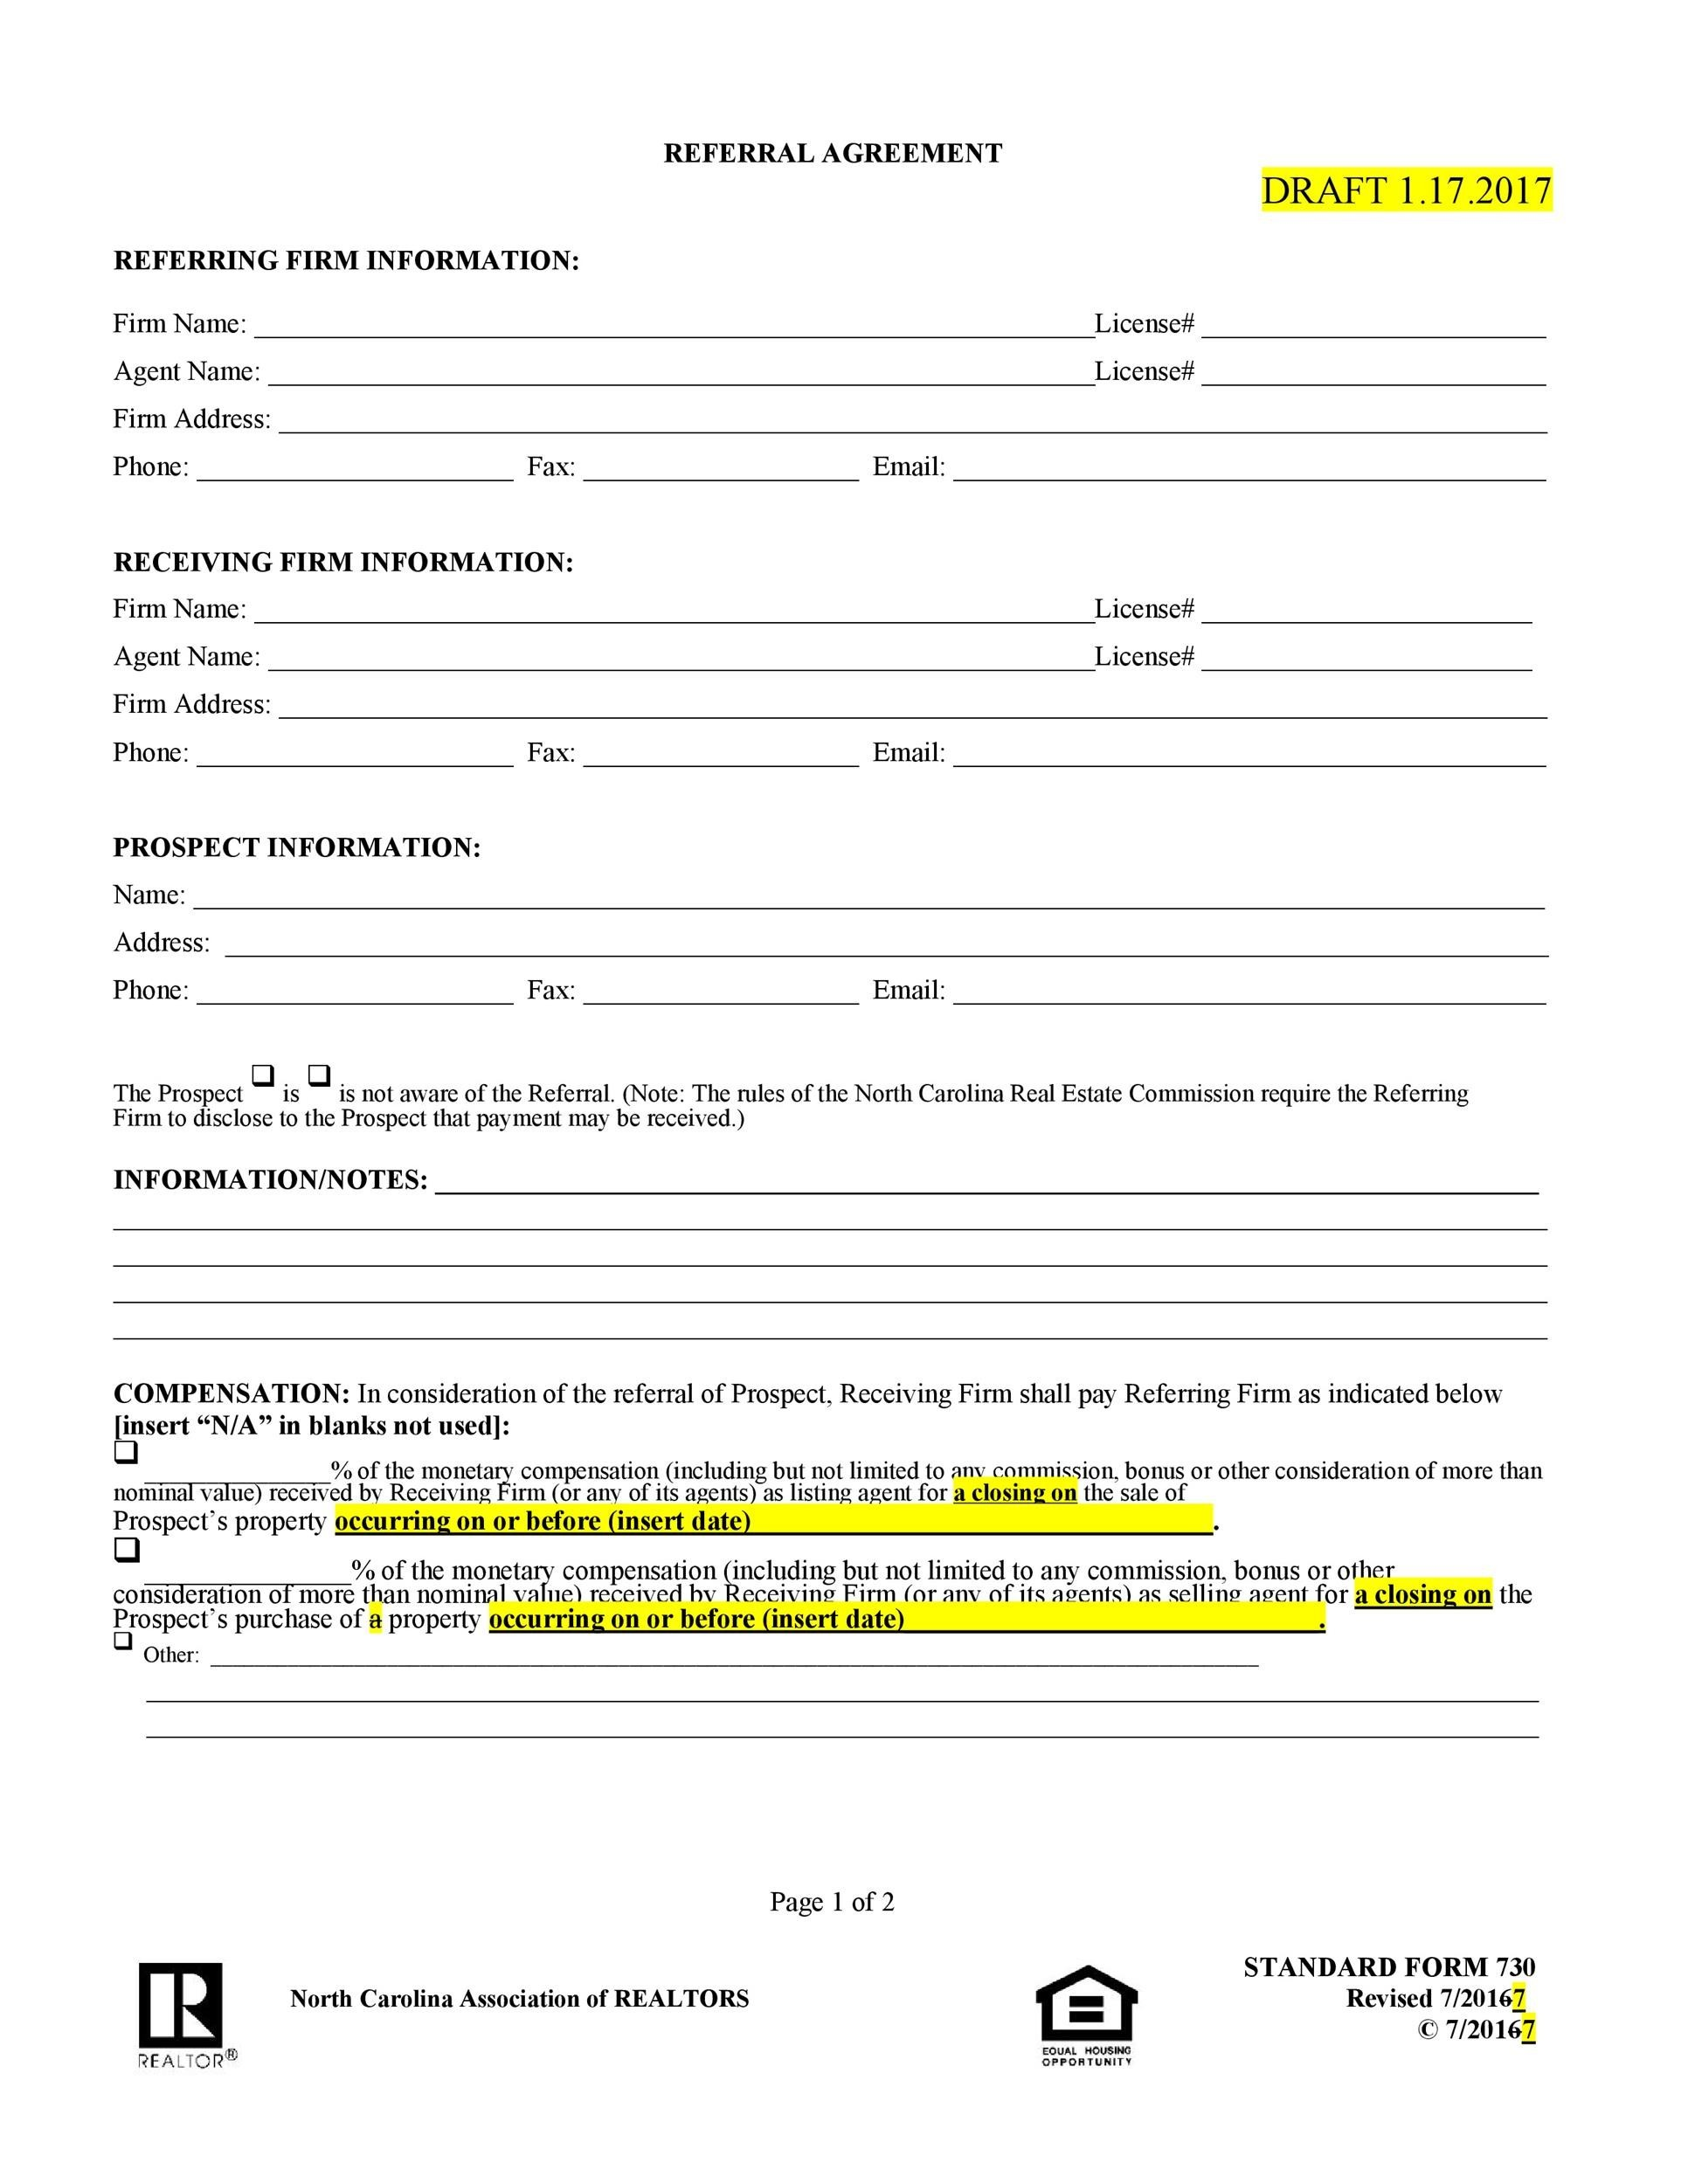 Free referral agreement template 27